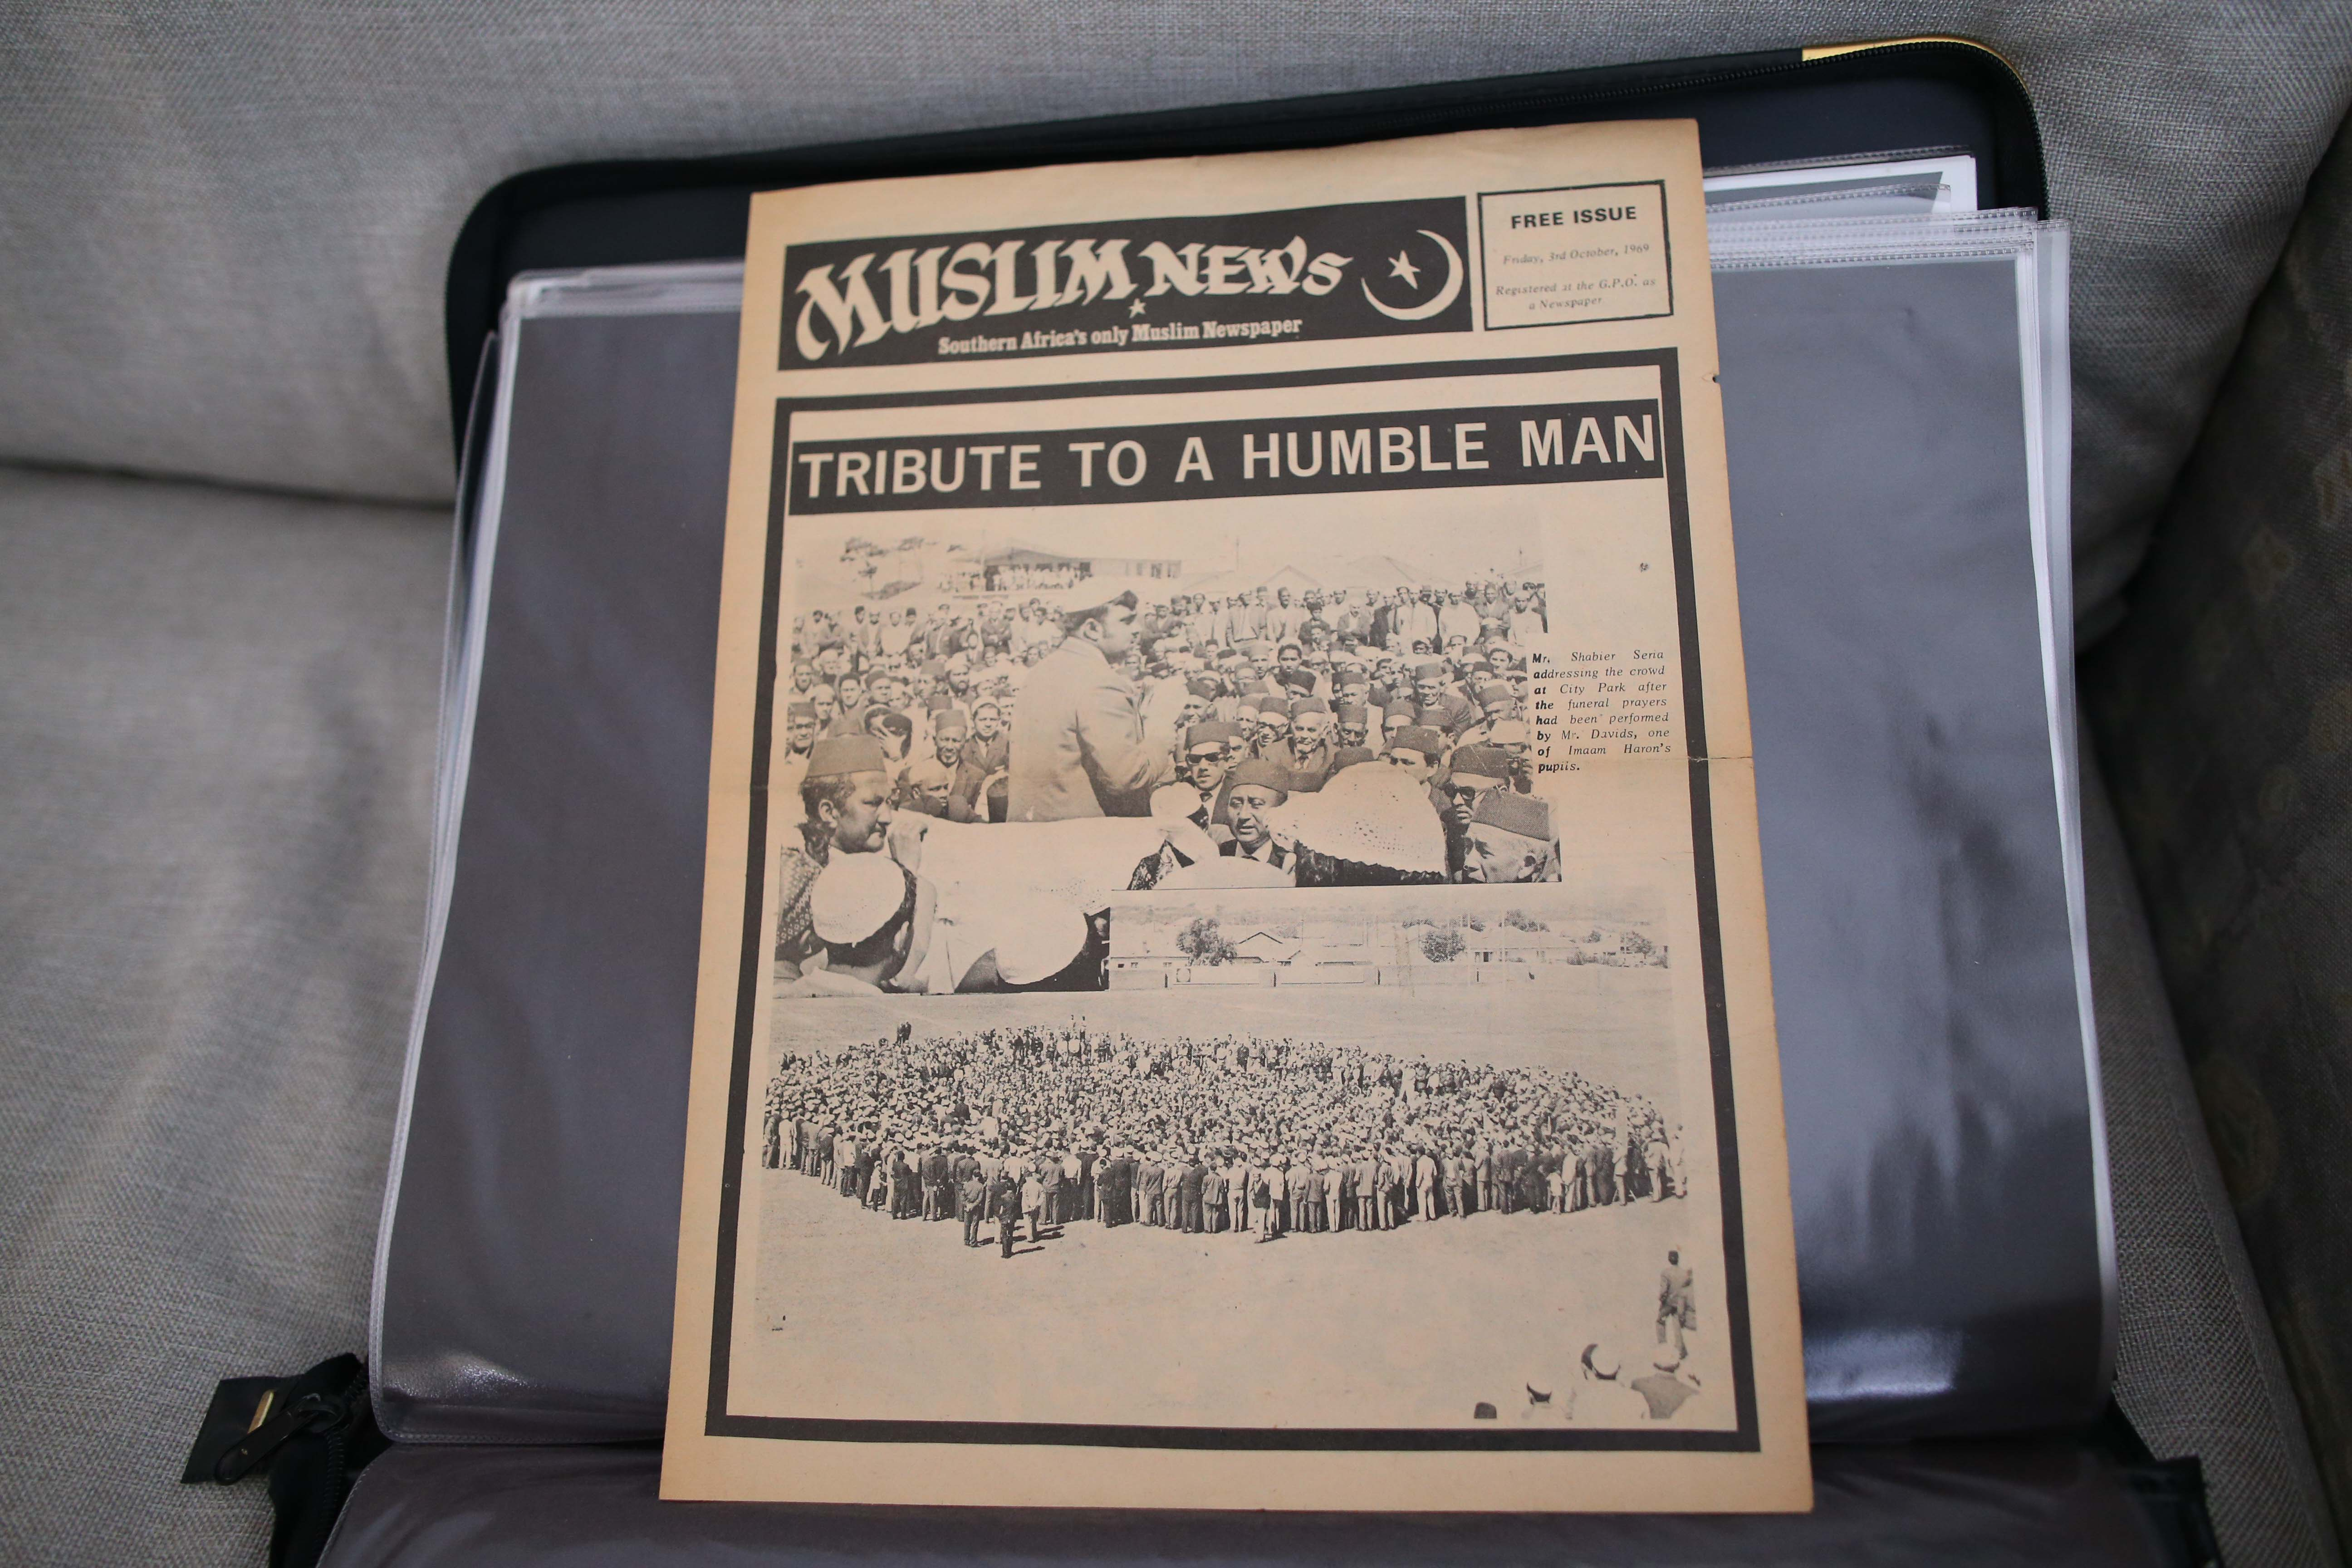 22 September 2019: The front page of the Muslim News with photographs of Imam Haron's funeral.